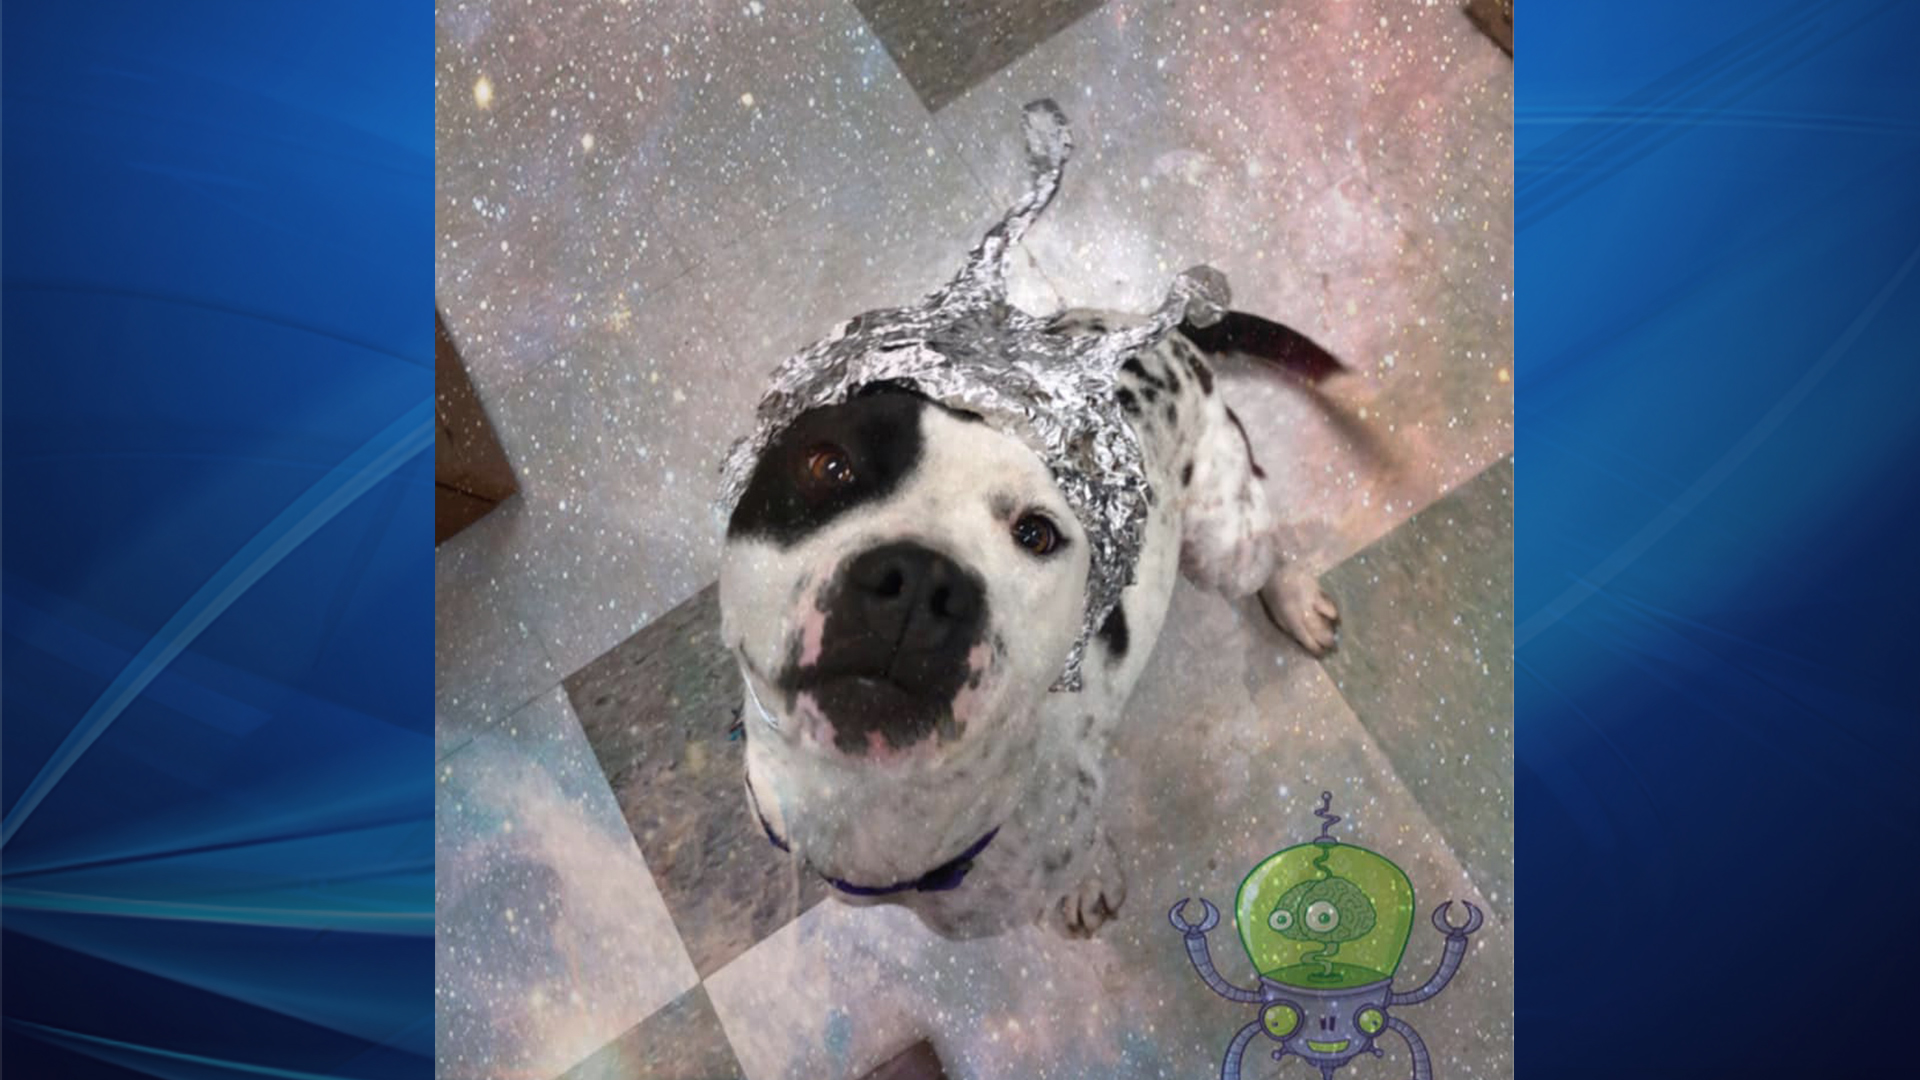 Shelter From Storm With Devices >> Oklahoma Animal Shelter Encouraging Area 51 Fans To Storm Our